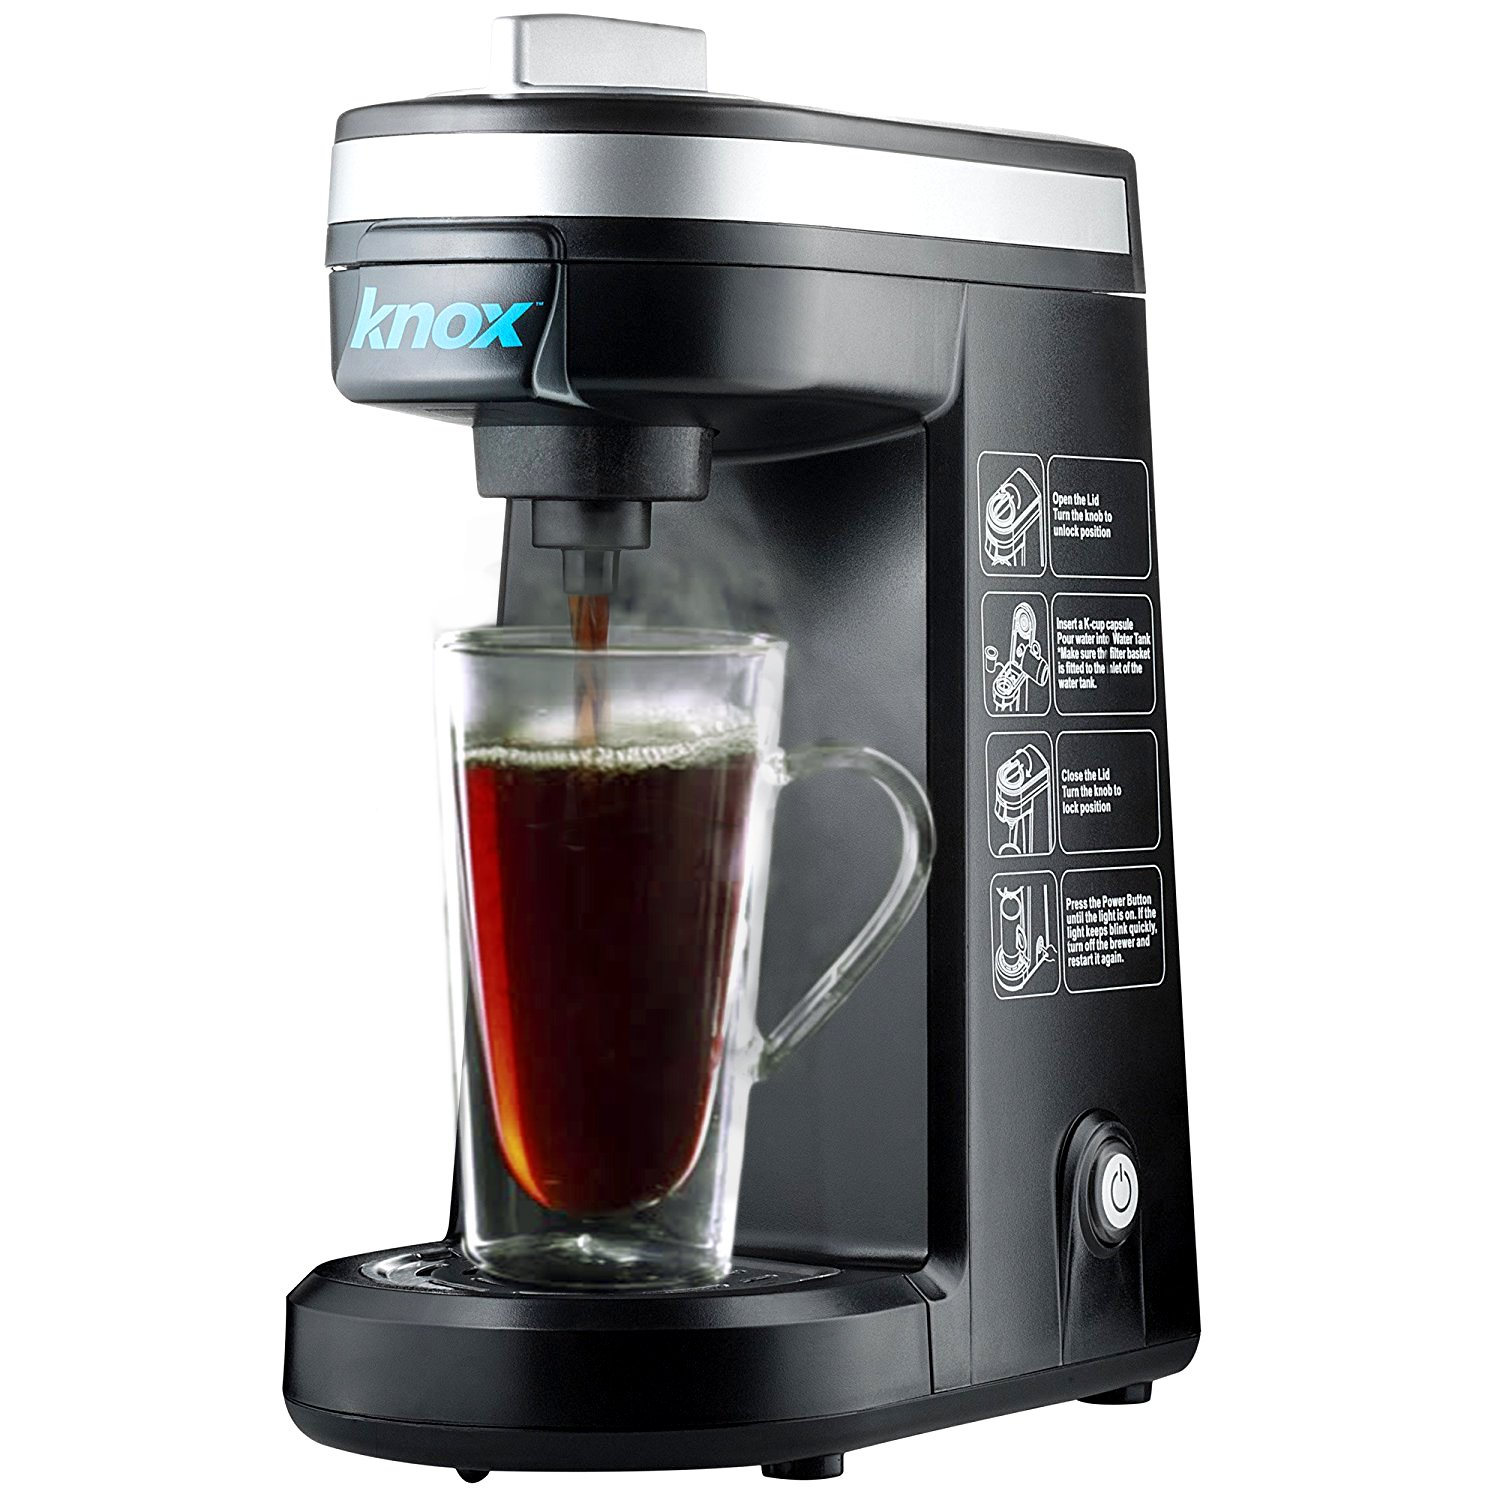 Knox Compact Travel Size K-Cup Coffee Brewer